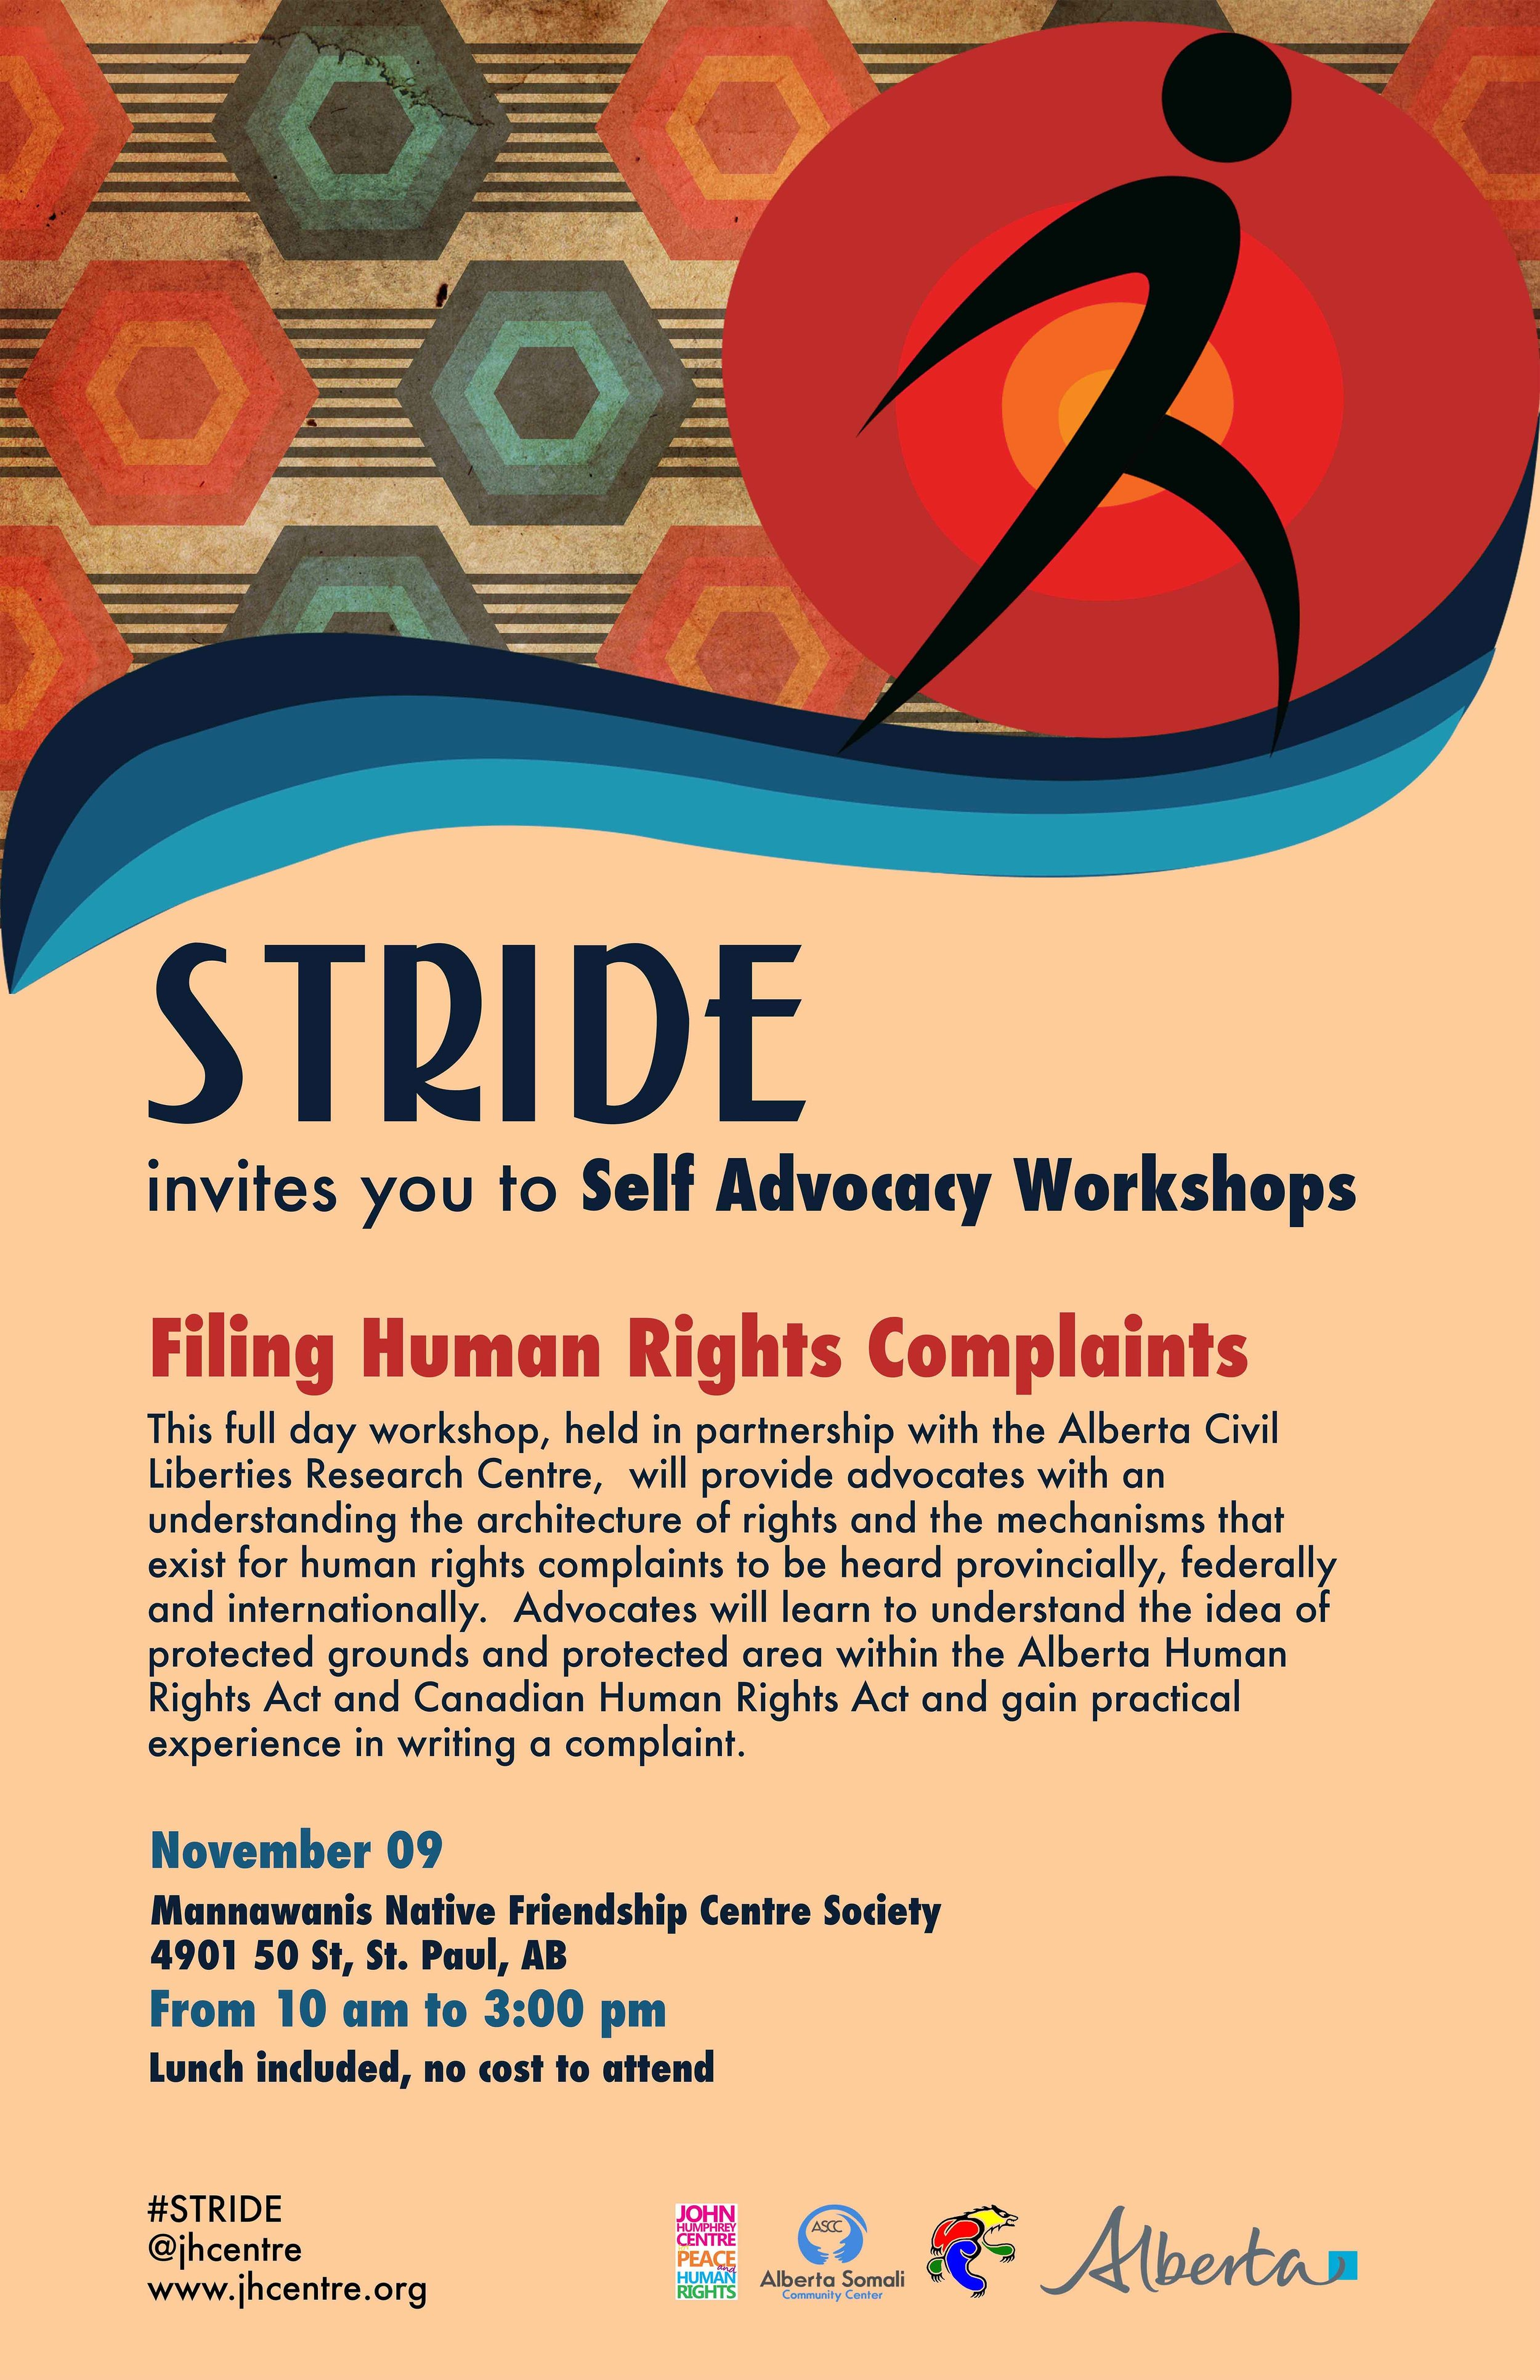 Stride-HumanRightsComplaints-Nov09-StPaul.jpg